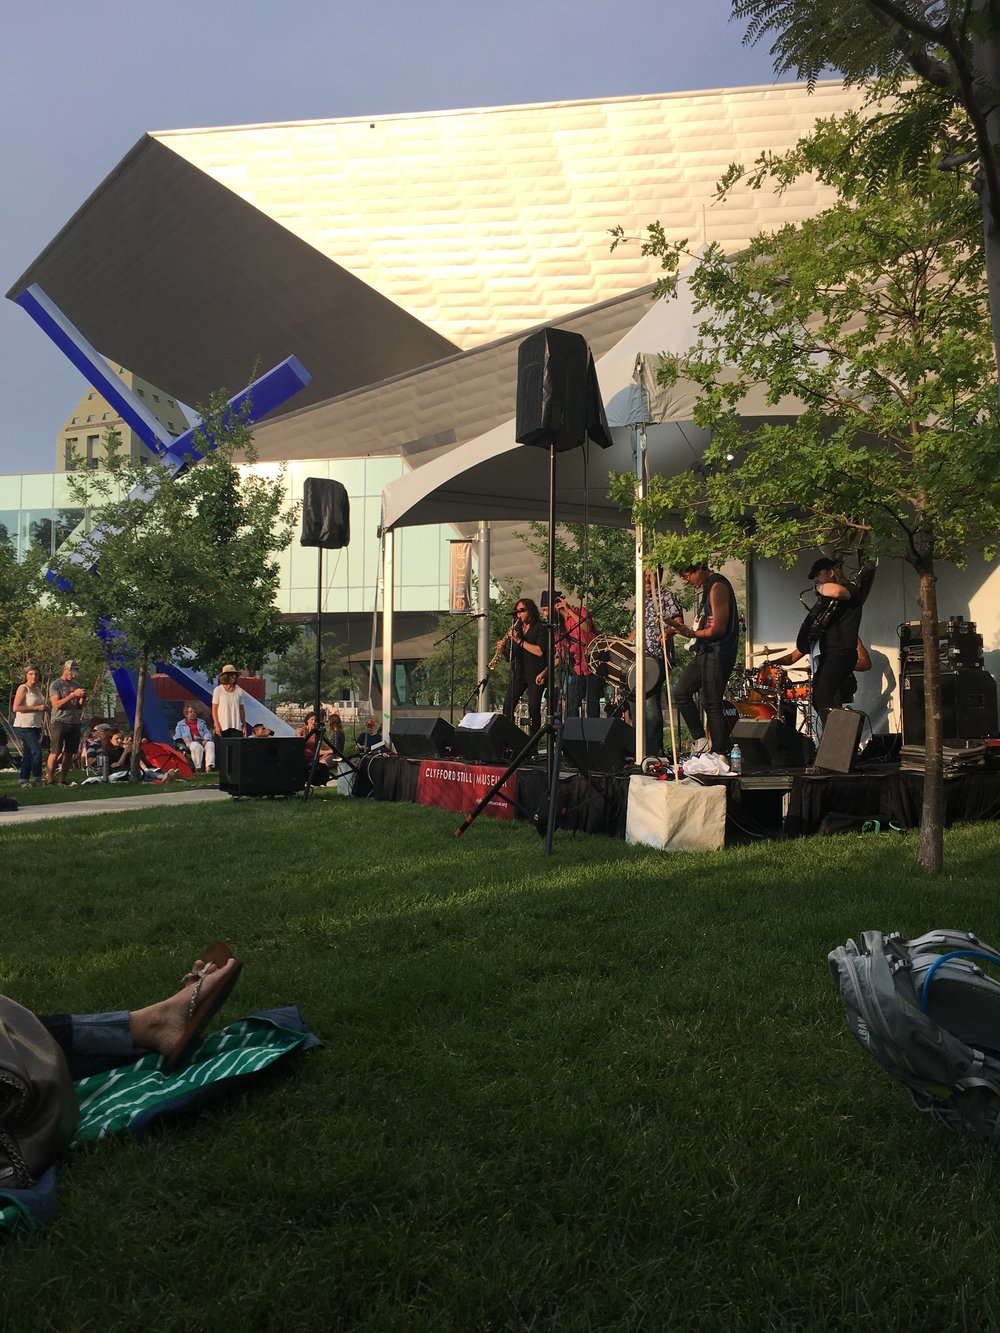 Enjoying Red Baraat at the Clyfford Still Museum